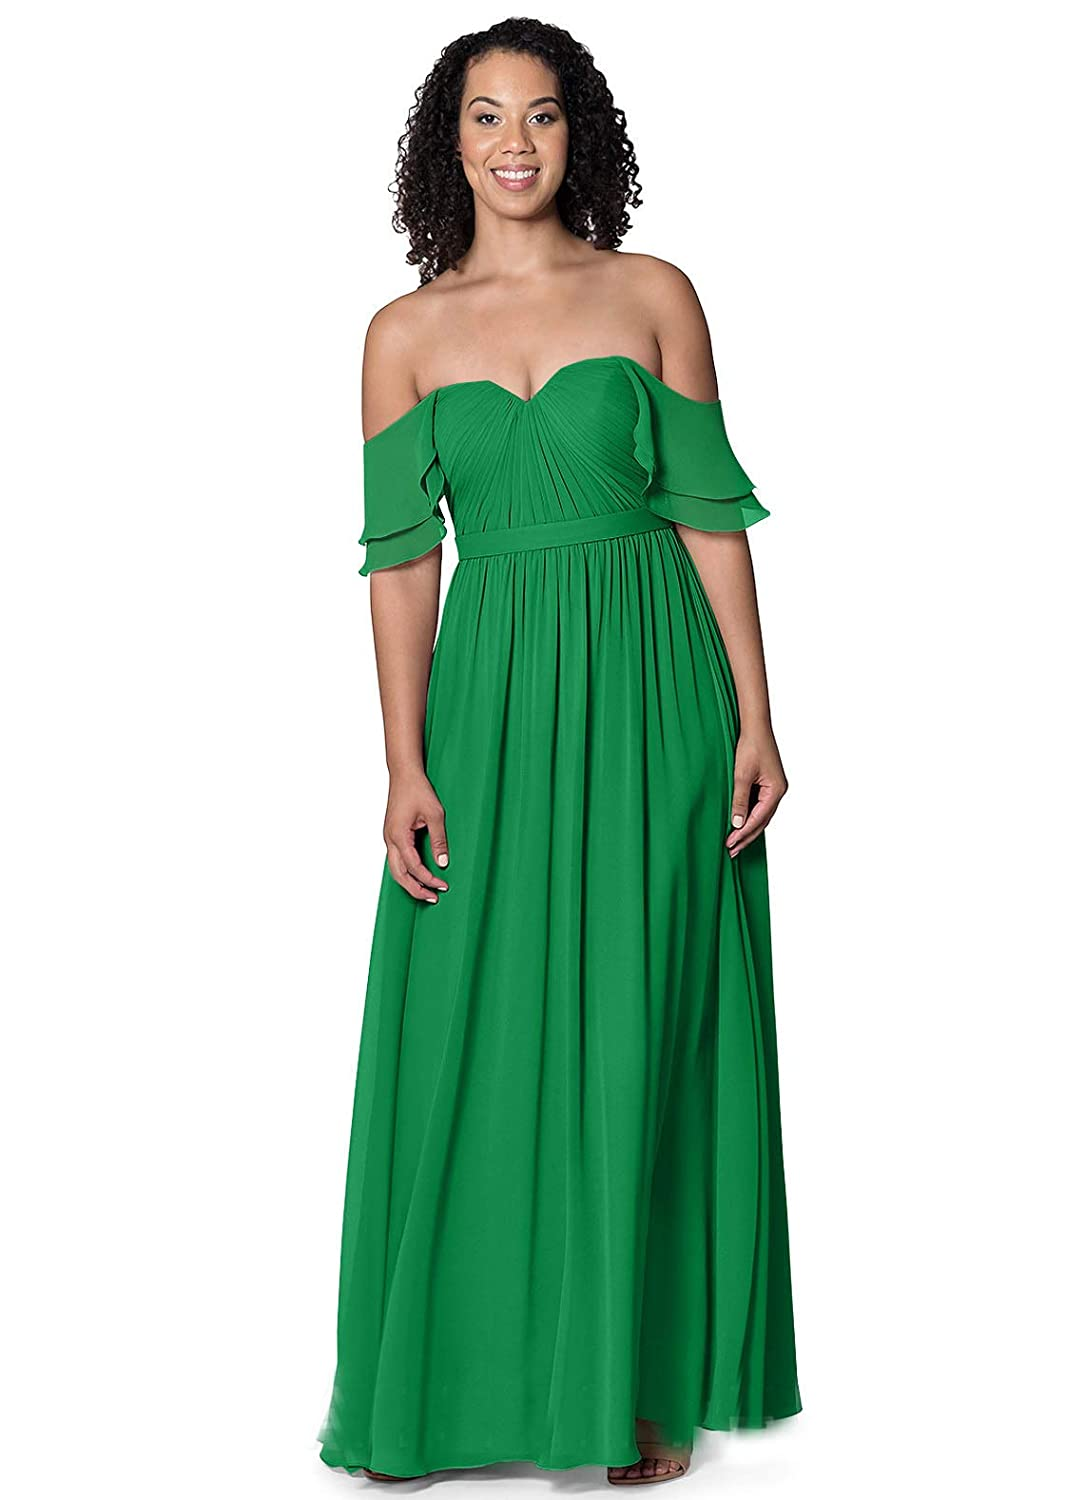 LOVEONLY Womens A-Line Off Shoulder Sweetheart Bridesmaid Dress Chiffon Pleated Spring 2019 Long Formal Dress